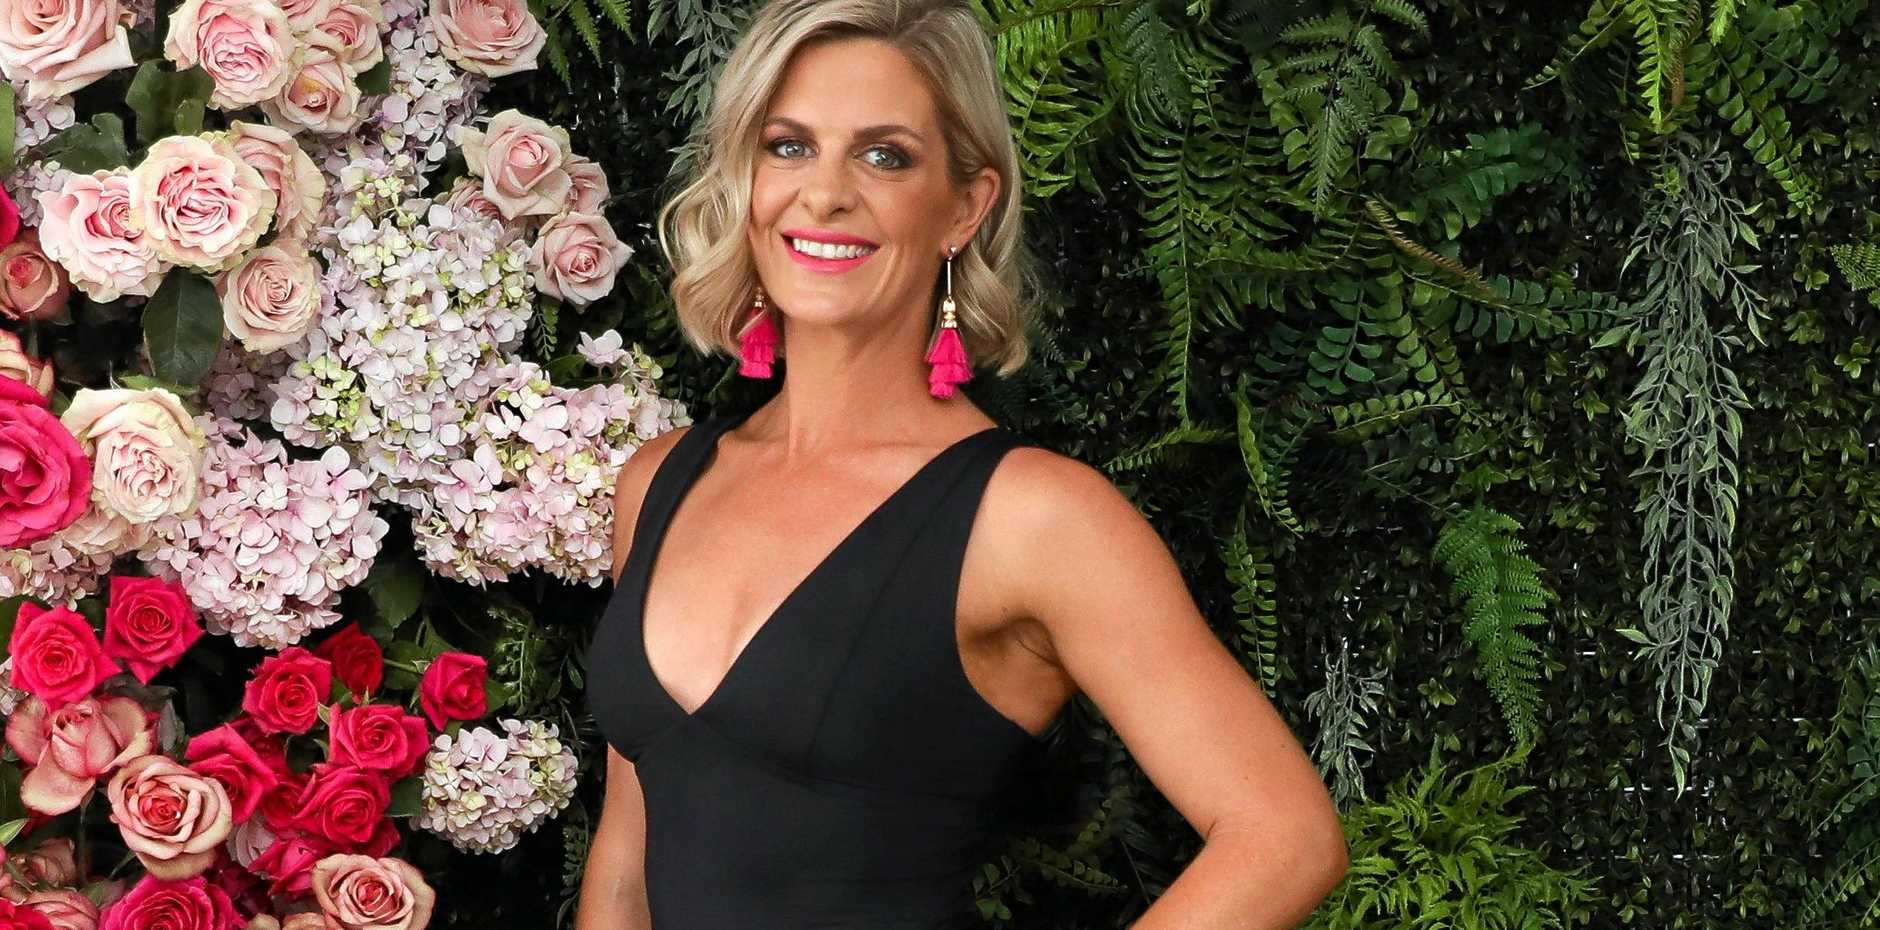 Stephanie Marriott, of Mountain Creek, is one of six Australian mums who've come out on top in The Healthy Mummy's annual Weight Loss Mums of the Year competition.